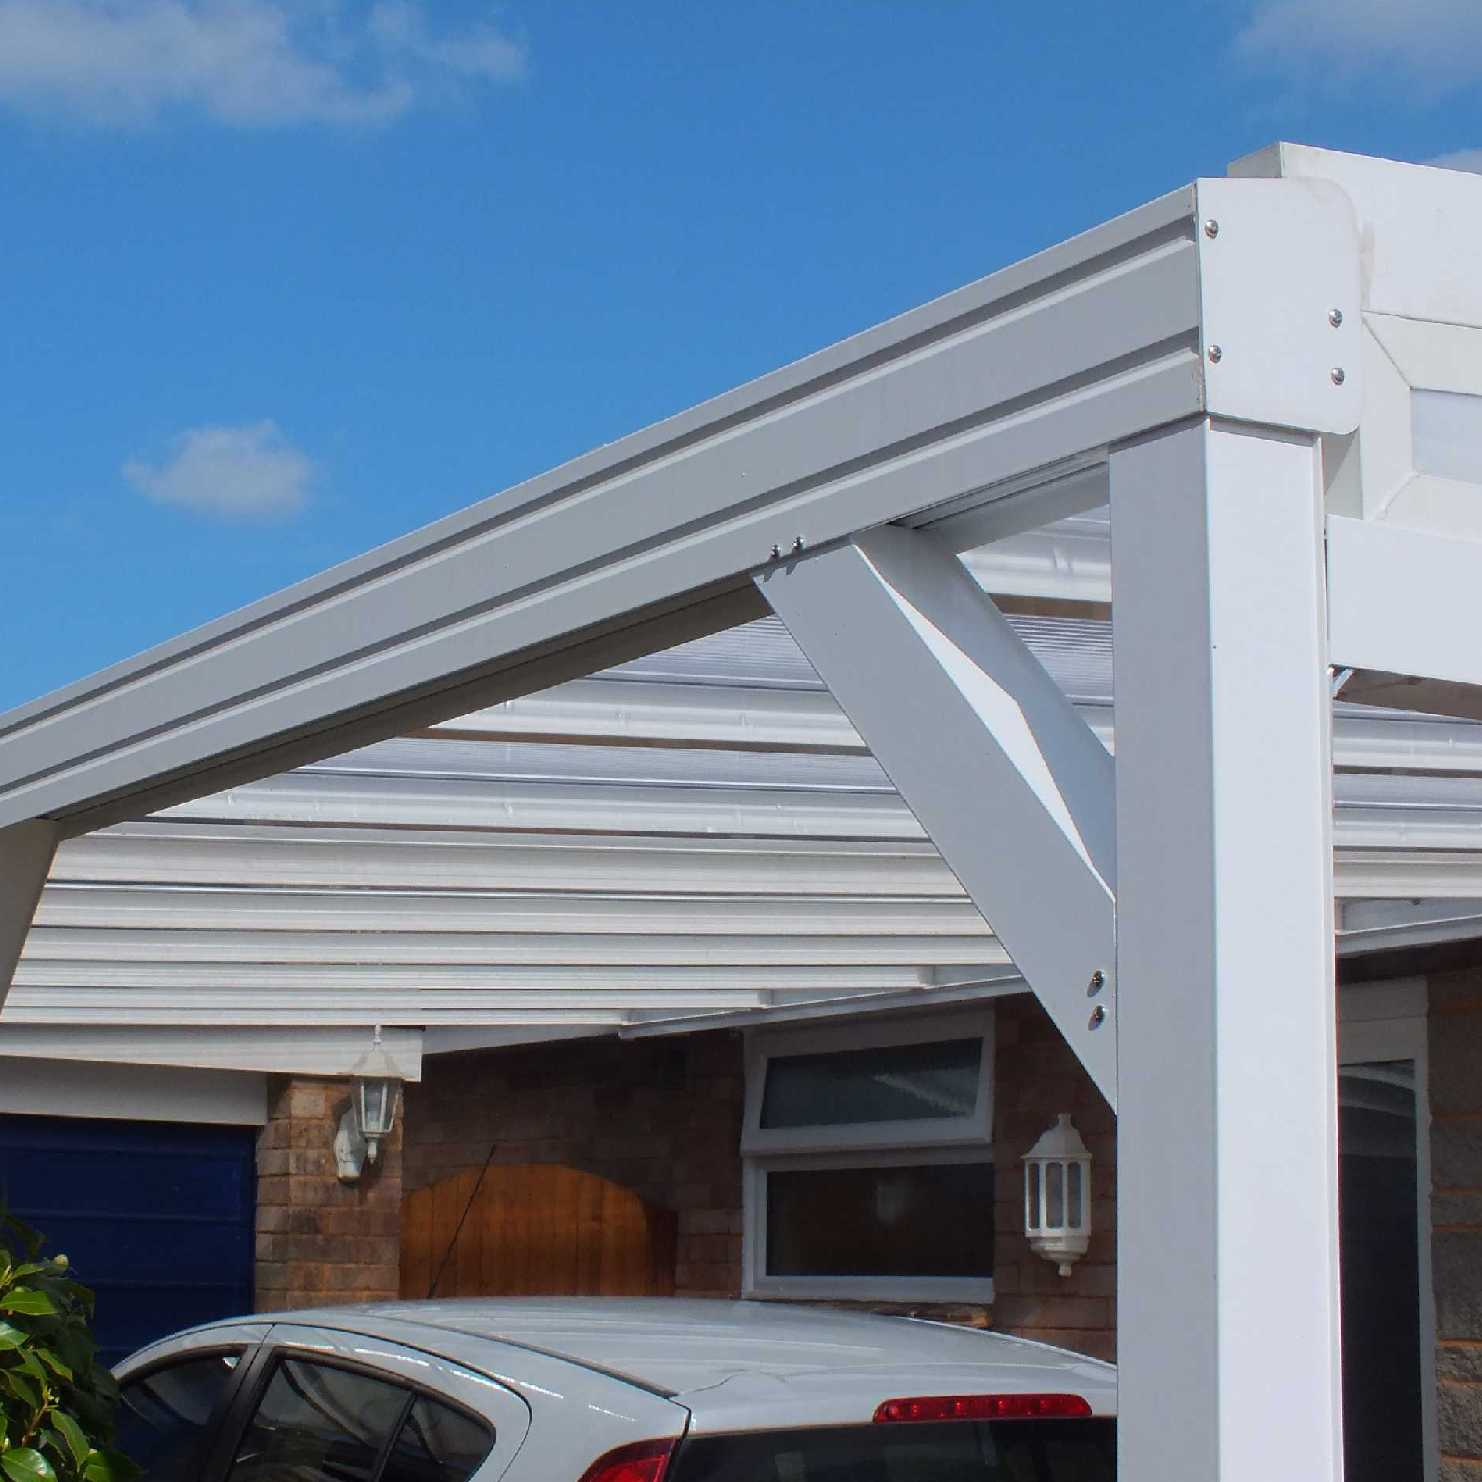 Buy Omega Smart White Lean-To Canopy with 16mm Polycarbonate Glazing - 2.1m (W) x 1.5m (P), (2) Supporting Posts online today